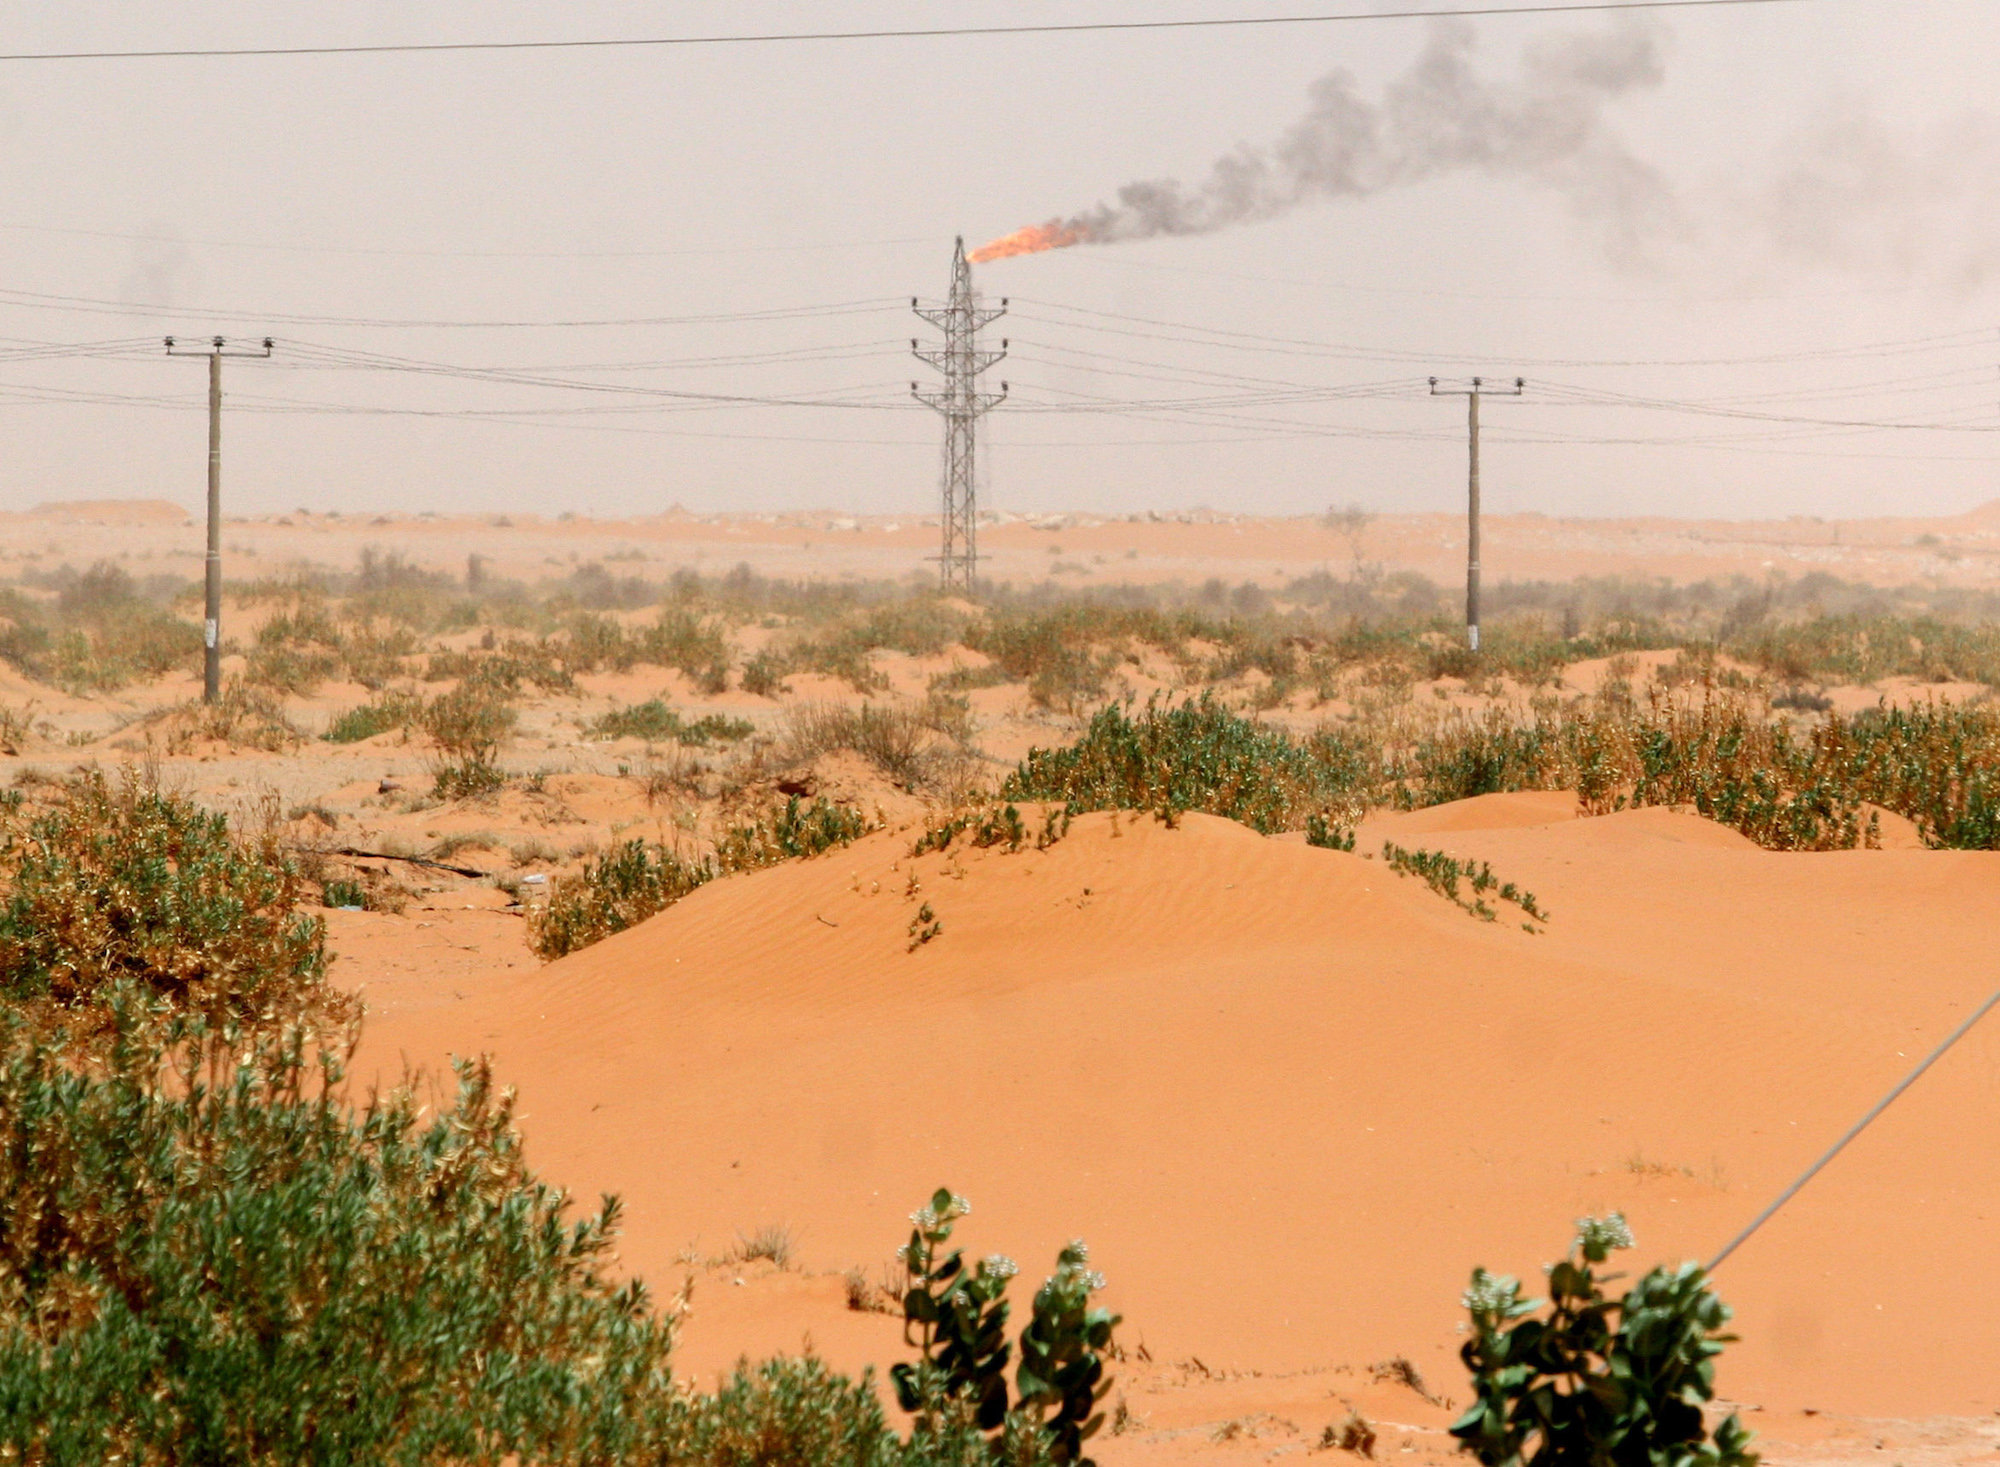 Khurais Oil Field